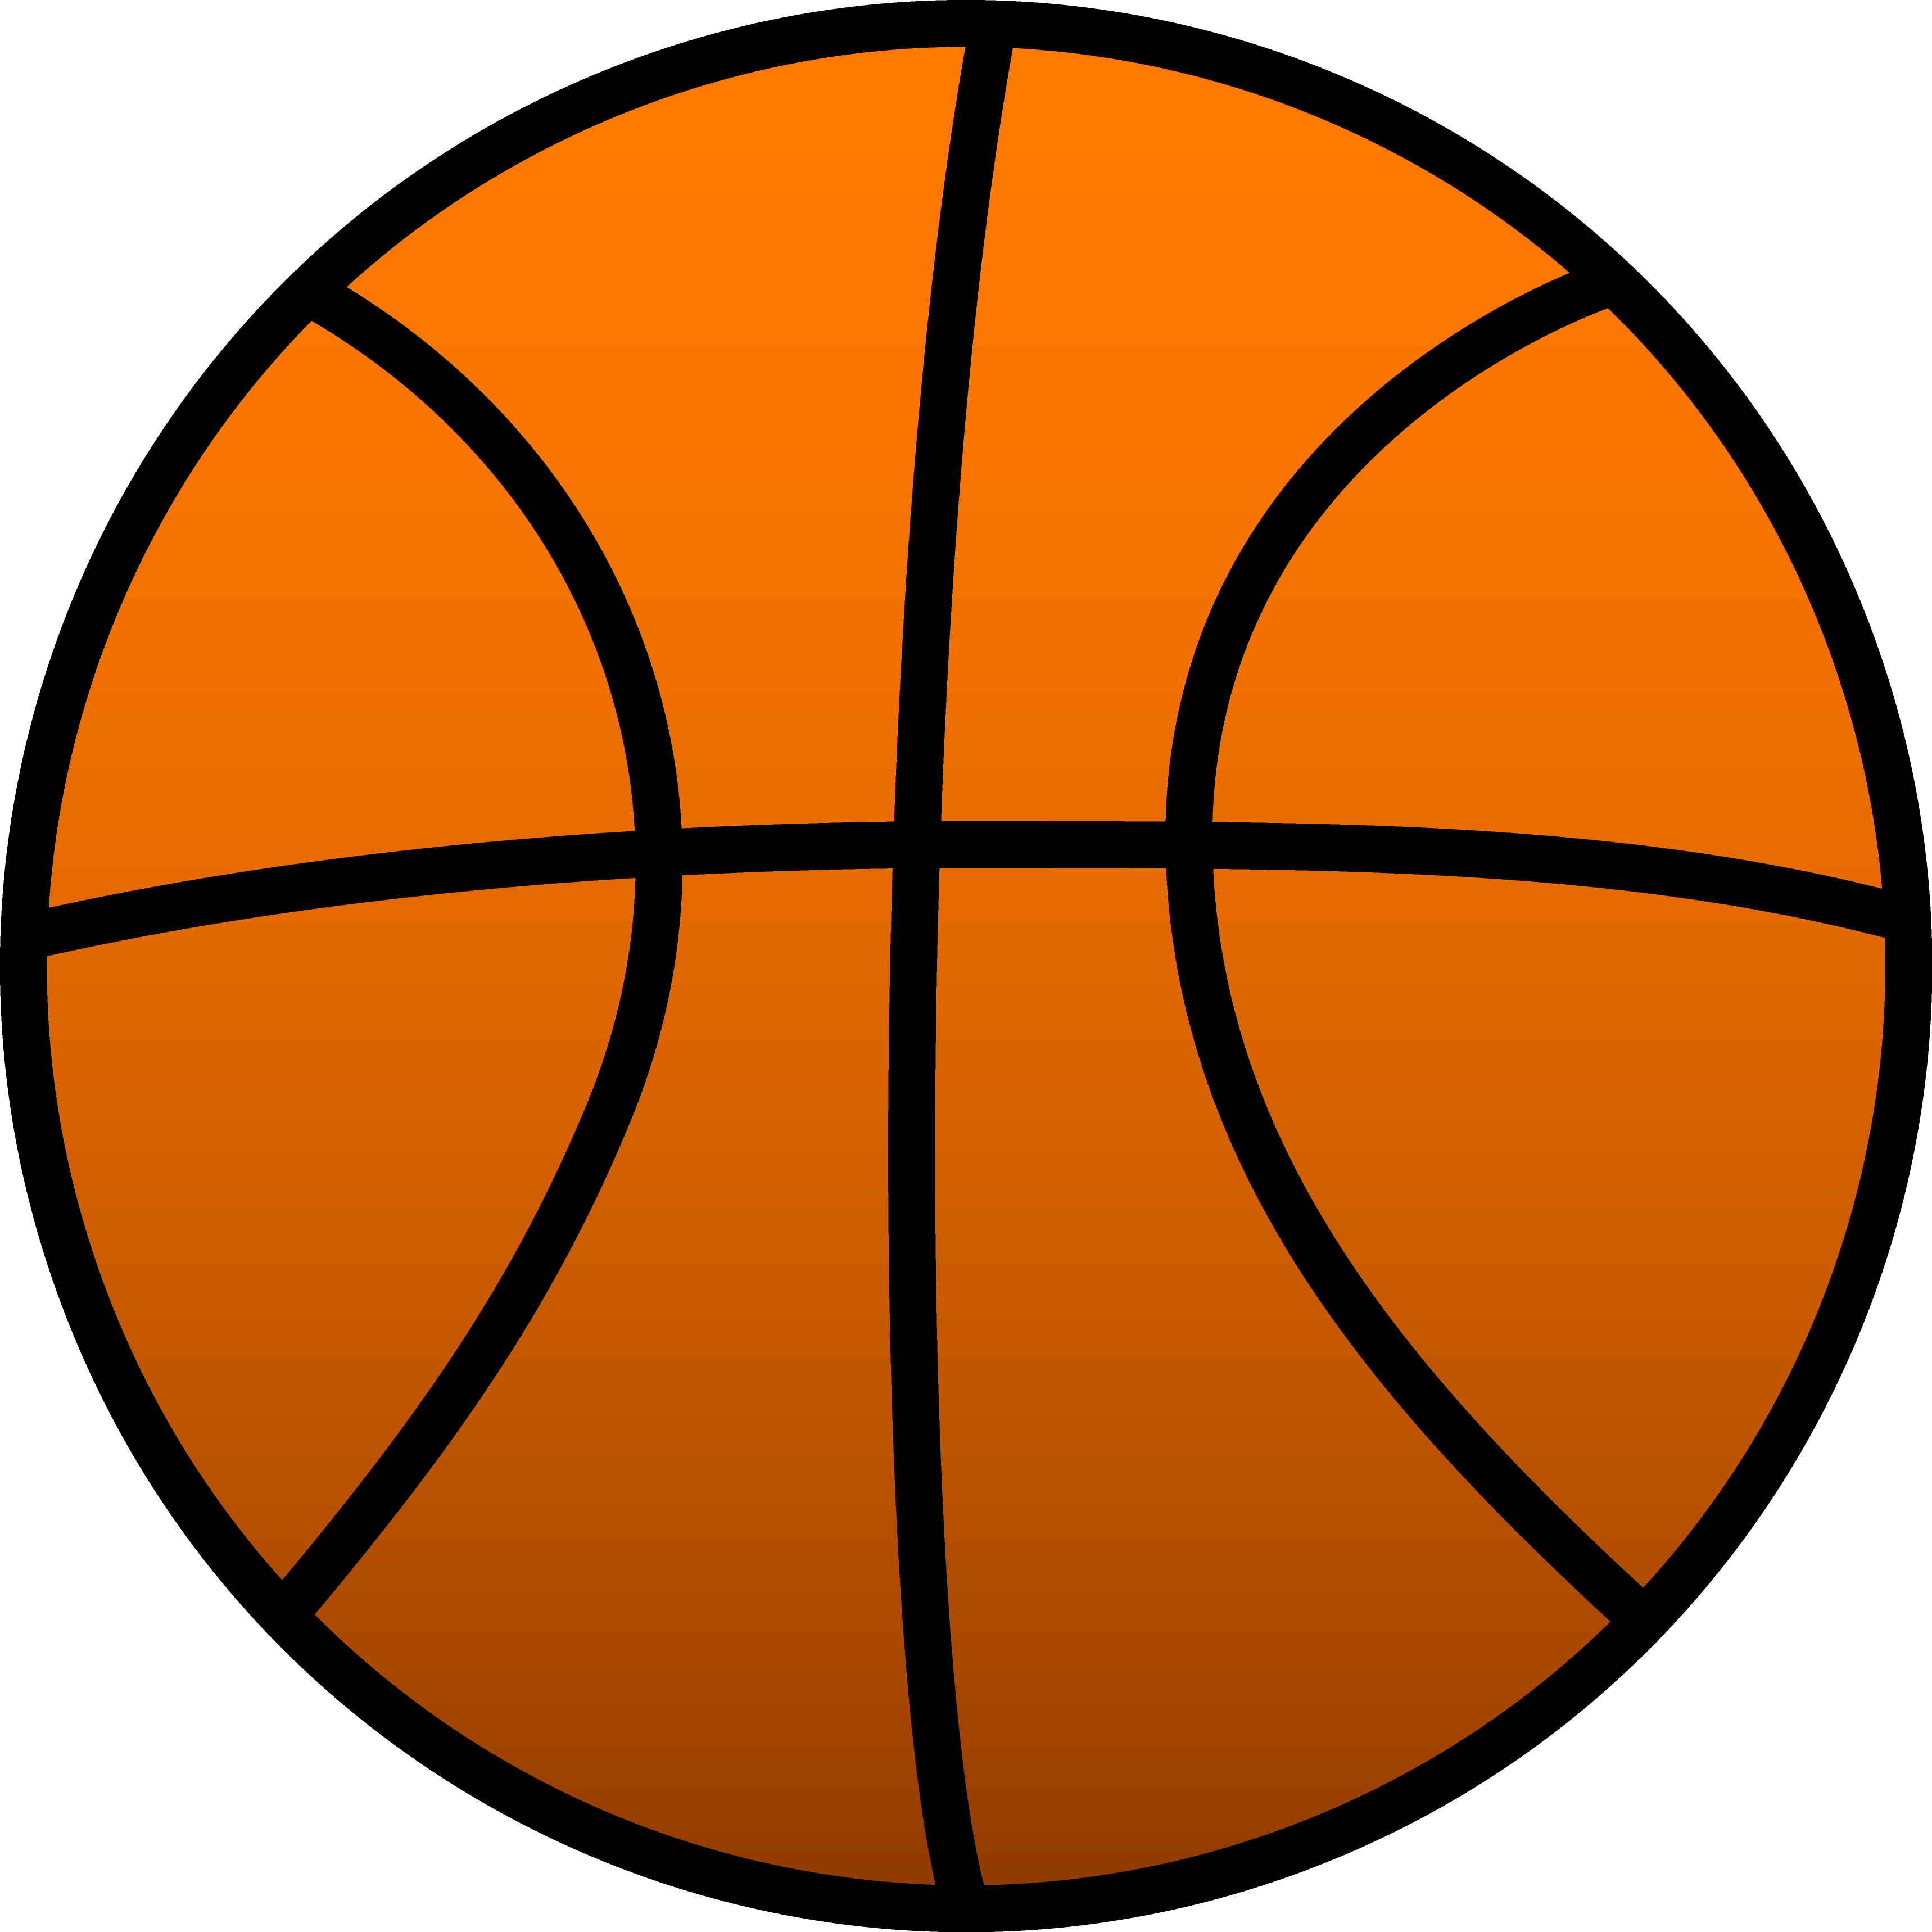 Basketball Scoreboard Clipart-basketball scoreboard clipart-7